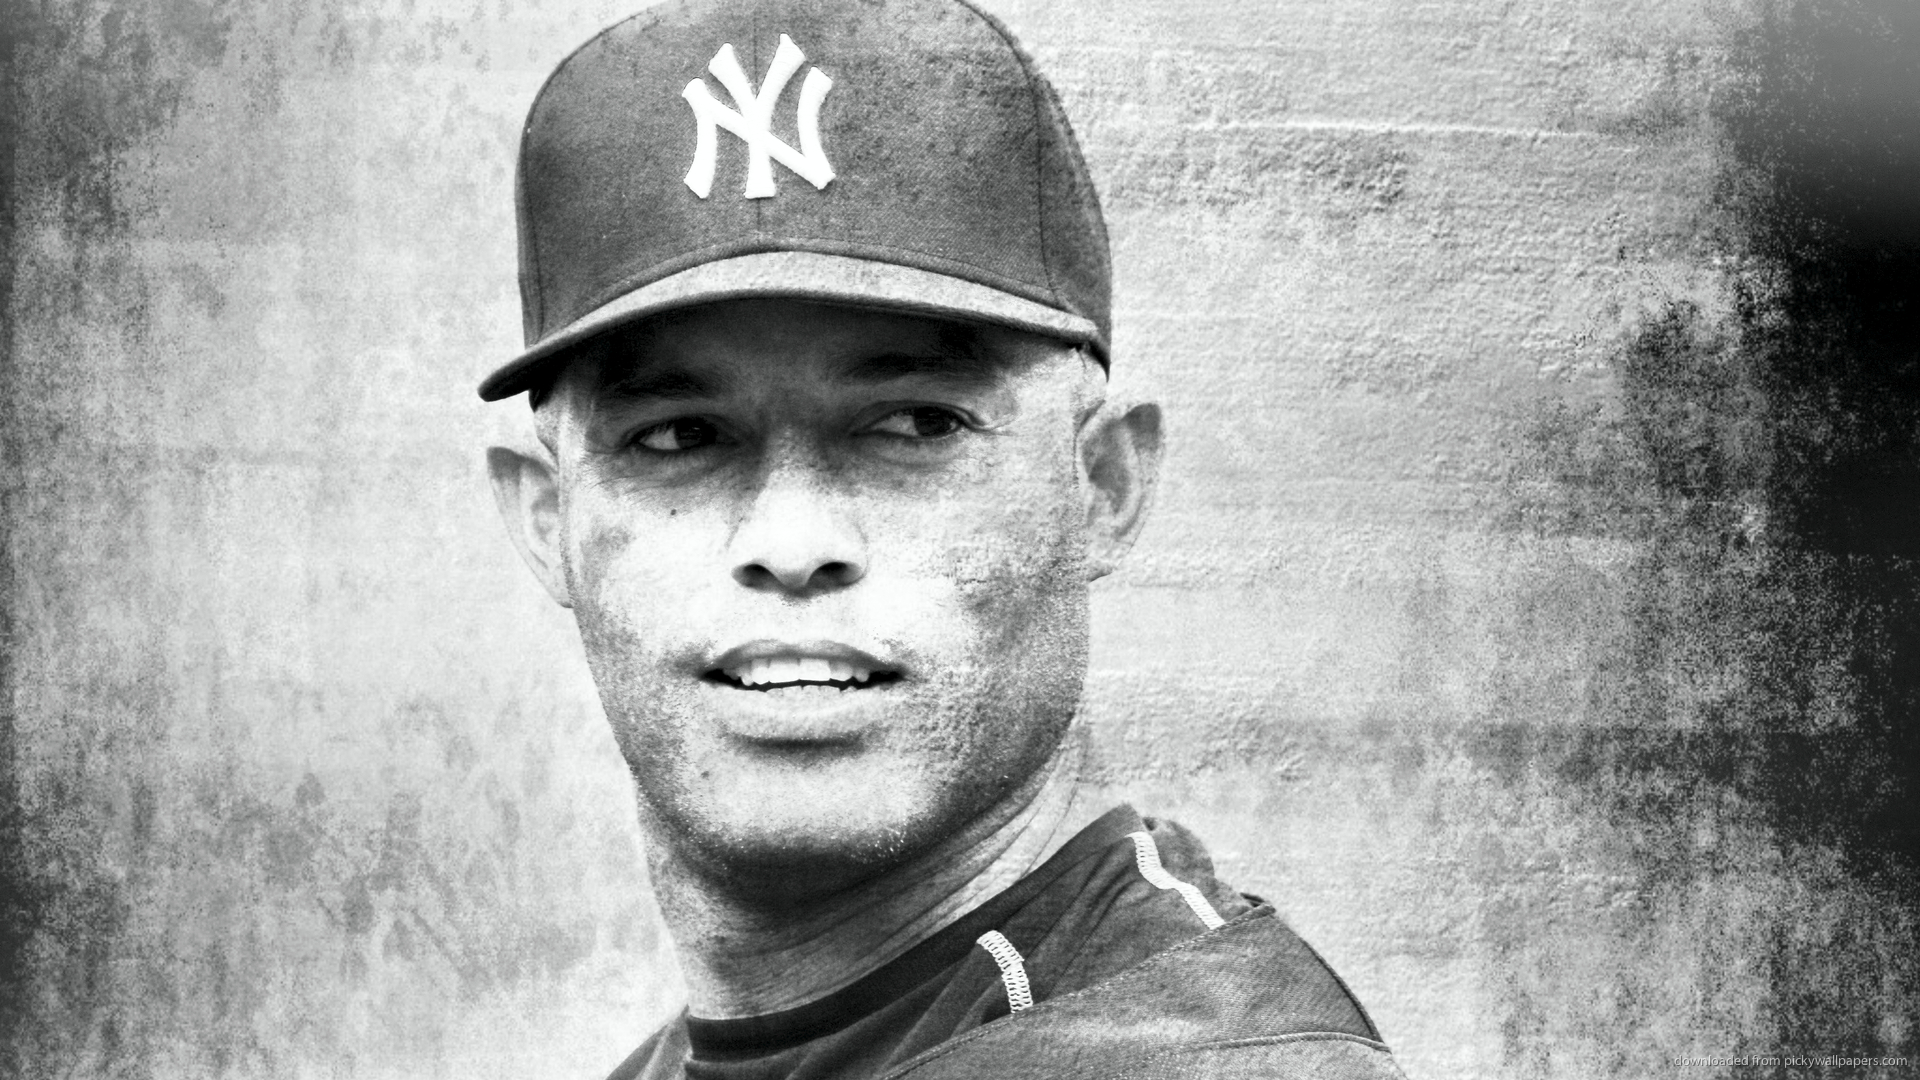 HD Mariano Rivera Grayscale Portrait Wallpaper